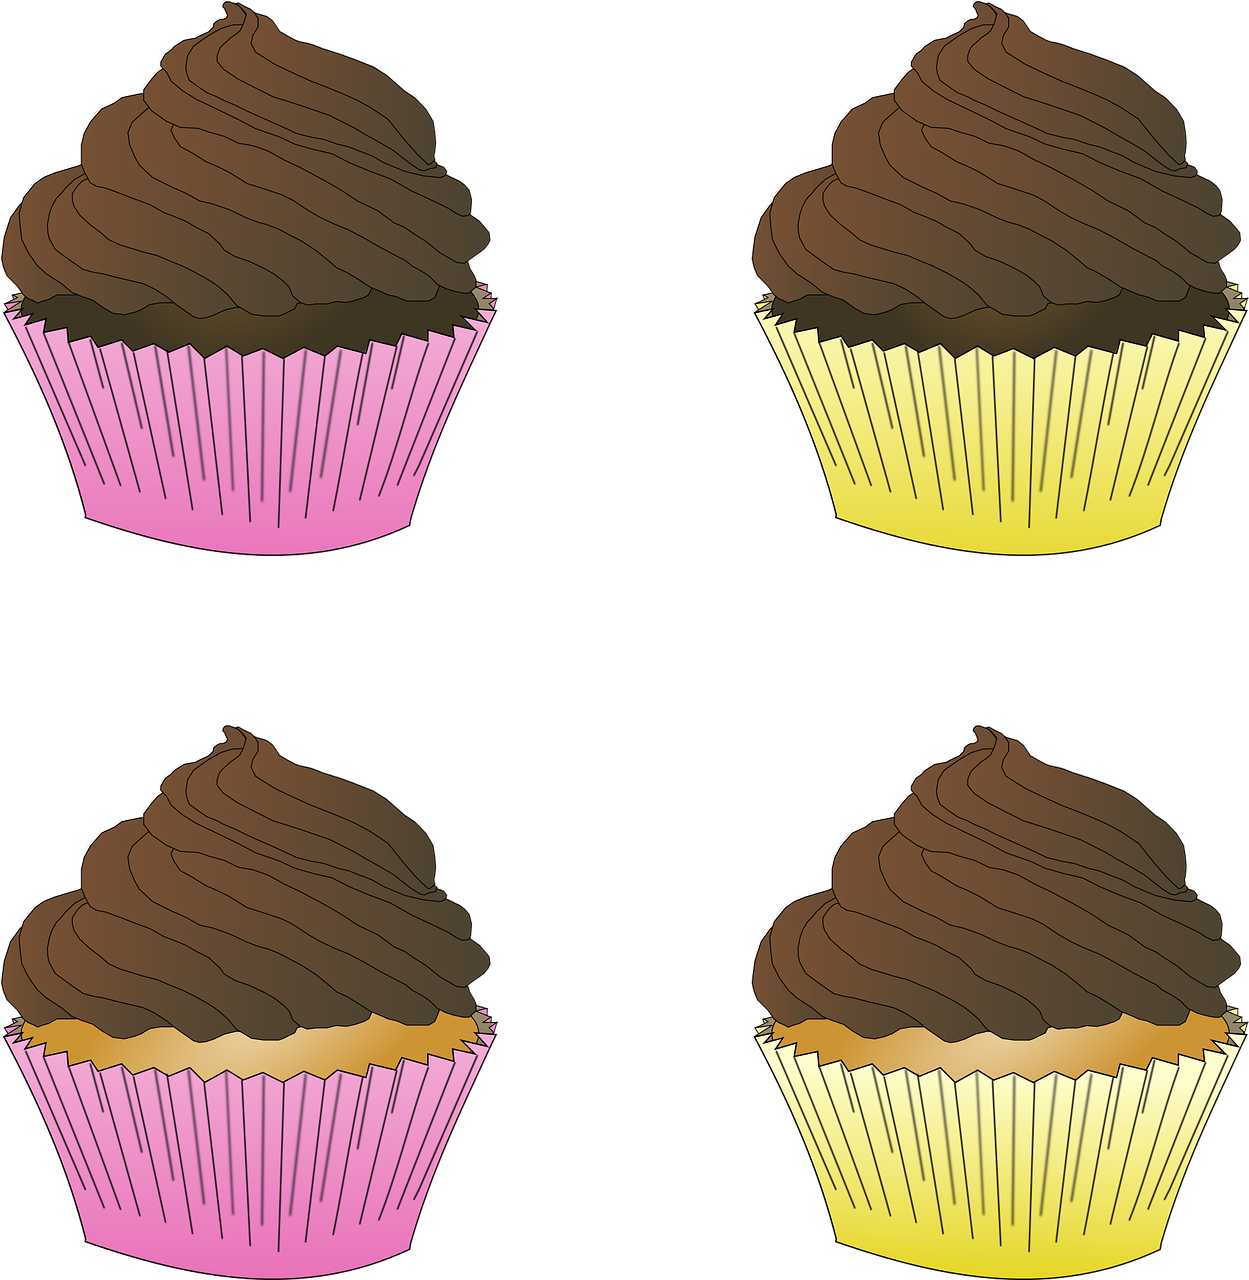 Four cupcakes with chocolate frosting.